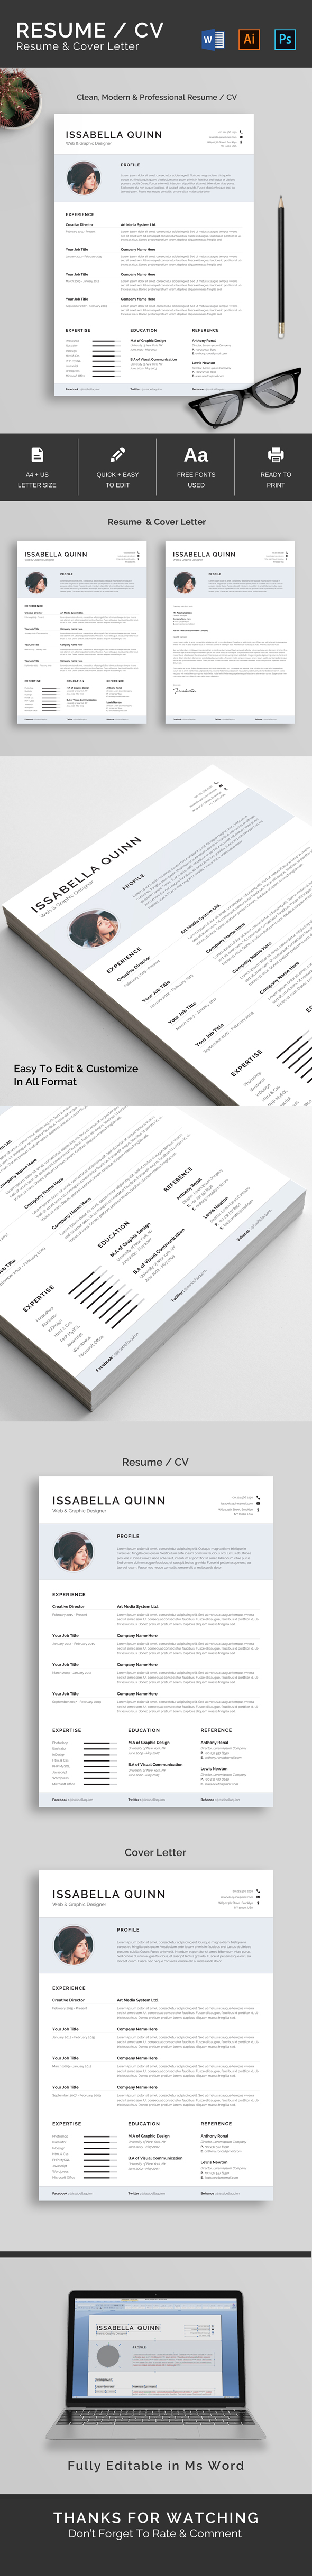 Modern & Professional Resume/CV Template